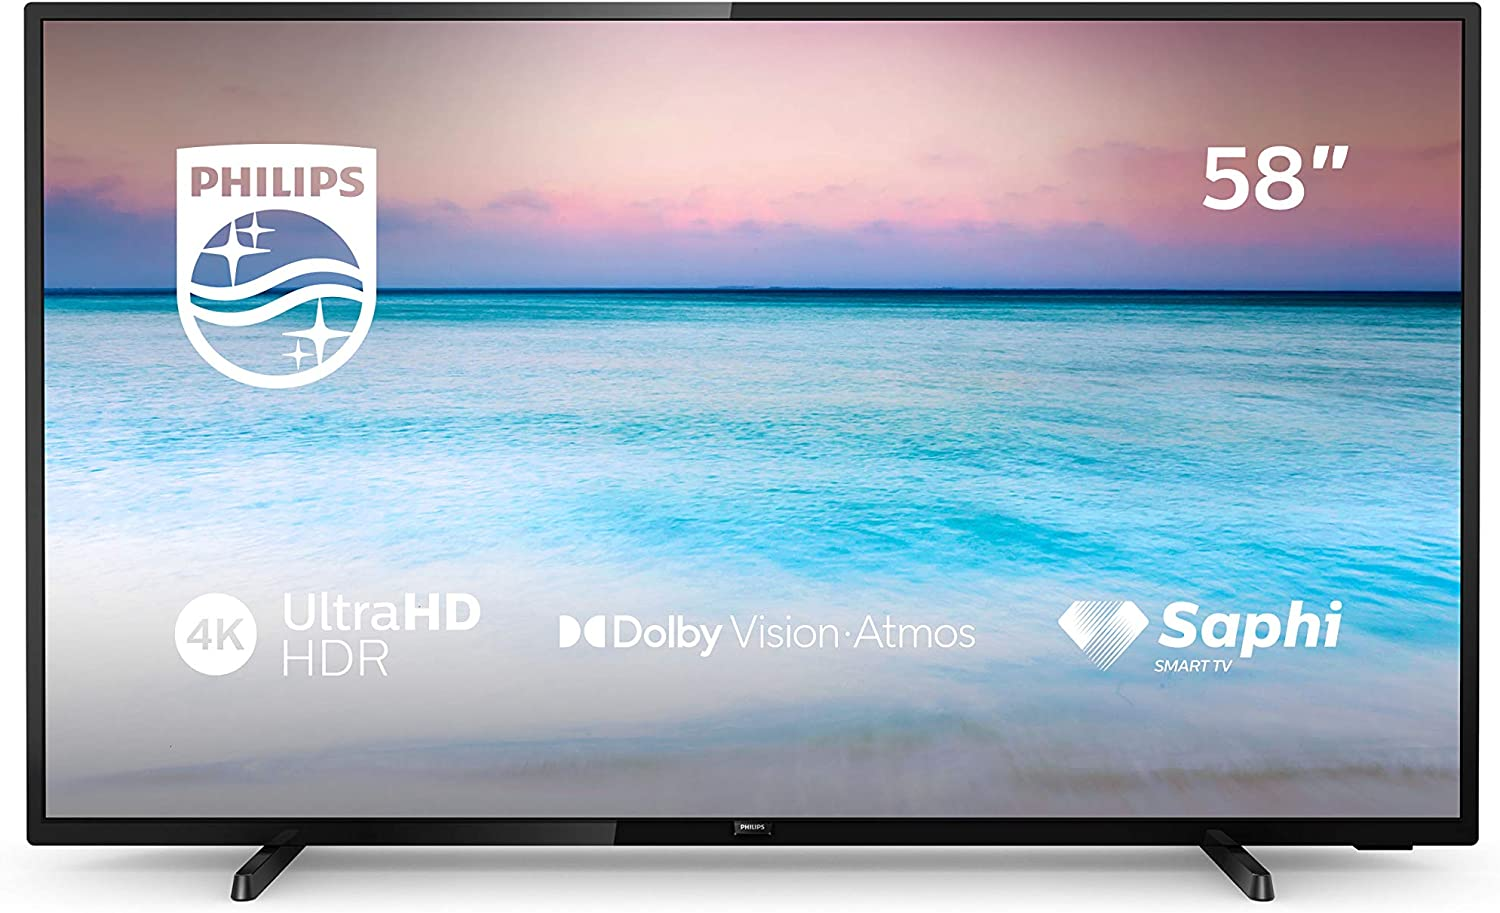 Philips 58PUS6504/12 - Smart TV LED 4K UHD, 58 pulgadas, Resolución de pantalla 3840 x 2160, Negro brillante: Amazon.es: Electrónica